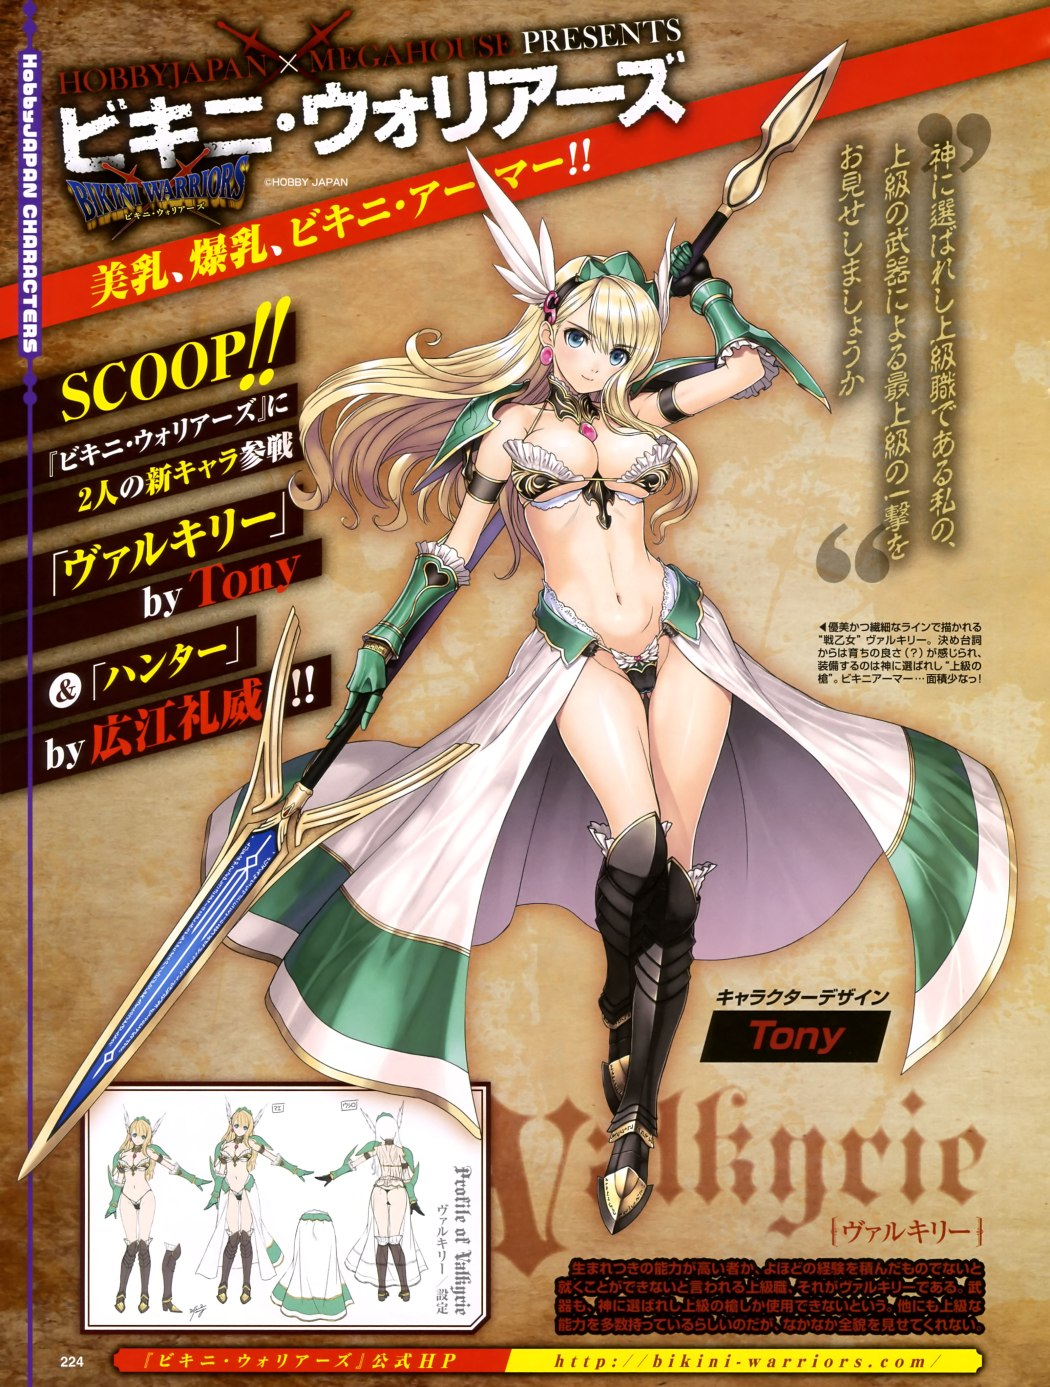 Bikini Warriors Anime Character Designs Have Major Plot 3